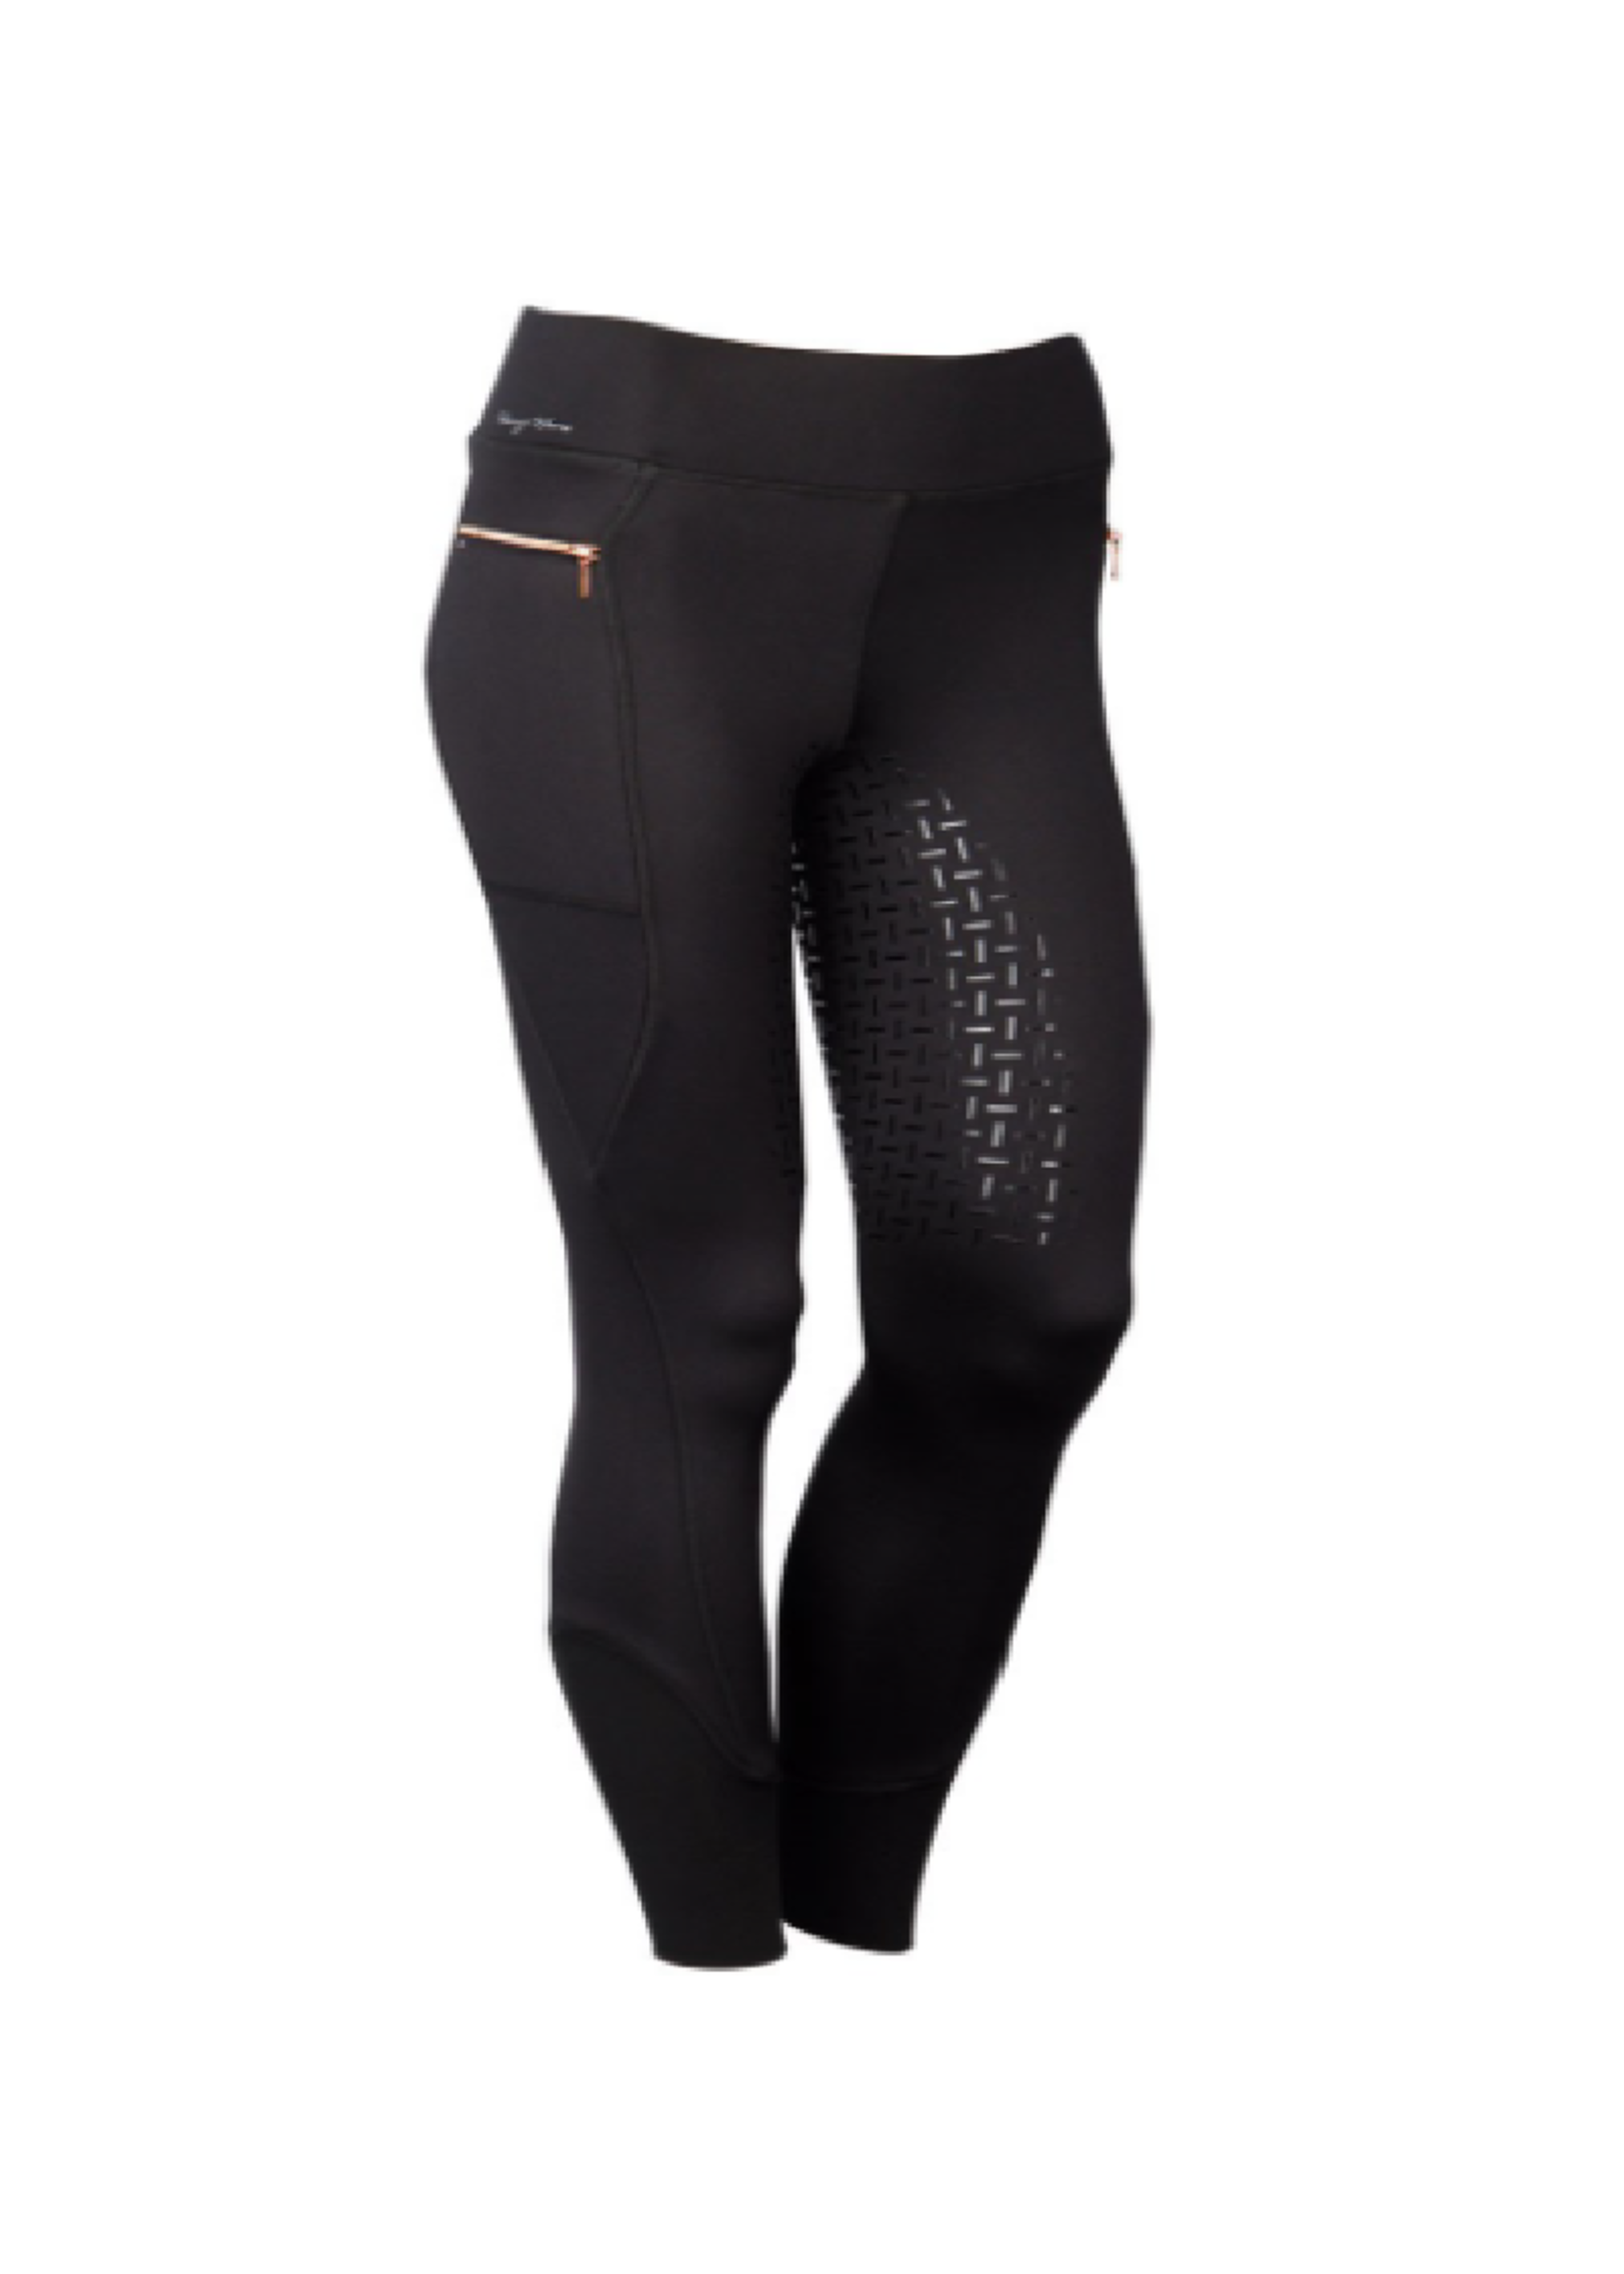 Harry's horse Harry Denici Cava  Full Grip Broek